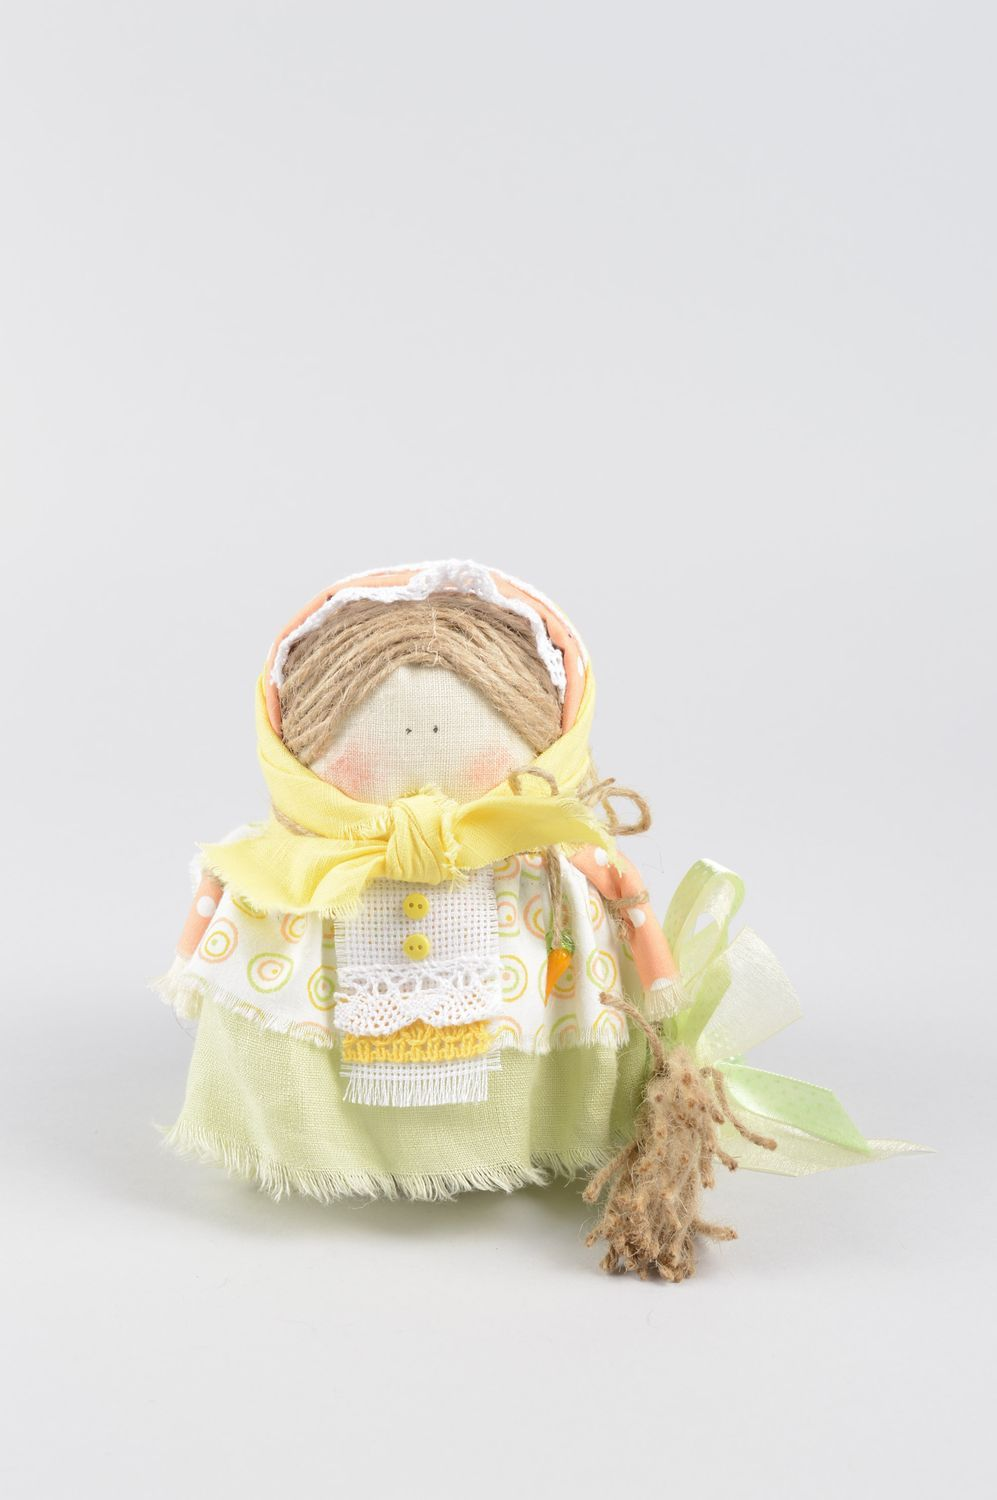 Handmade doll unusual doll decorative use only decor ideas unusual gift for baby photo 1